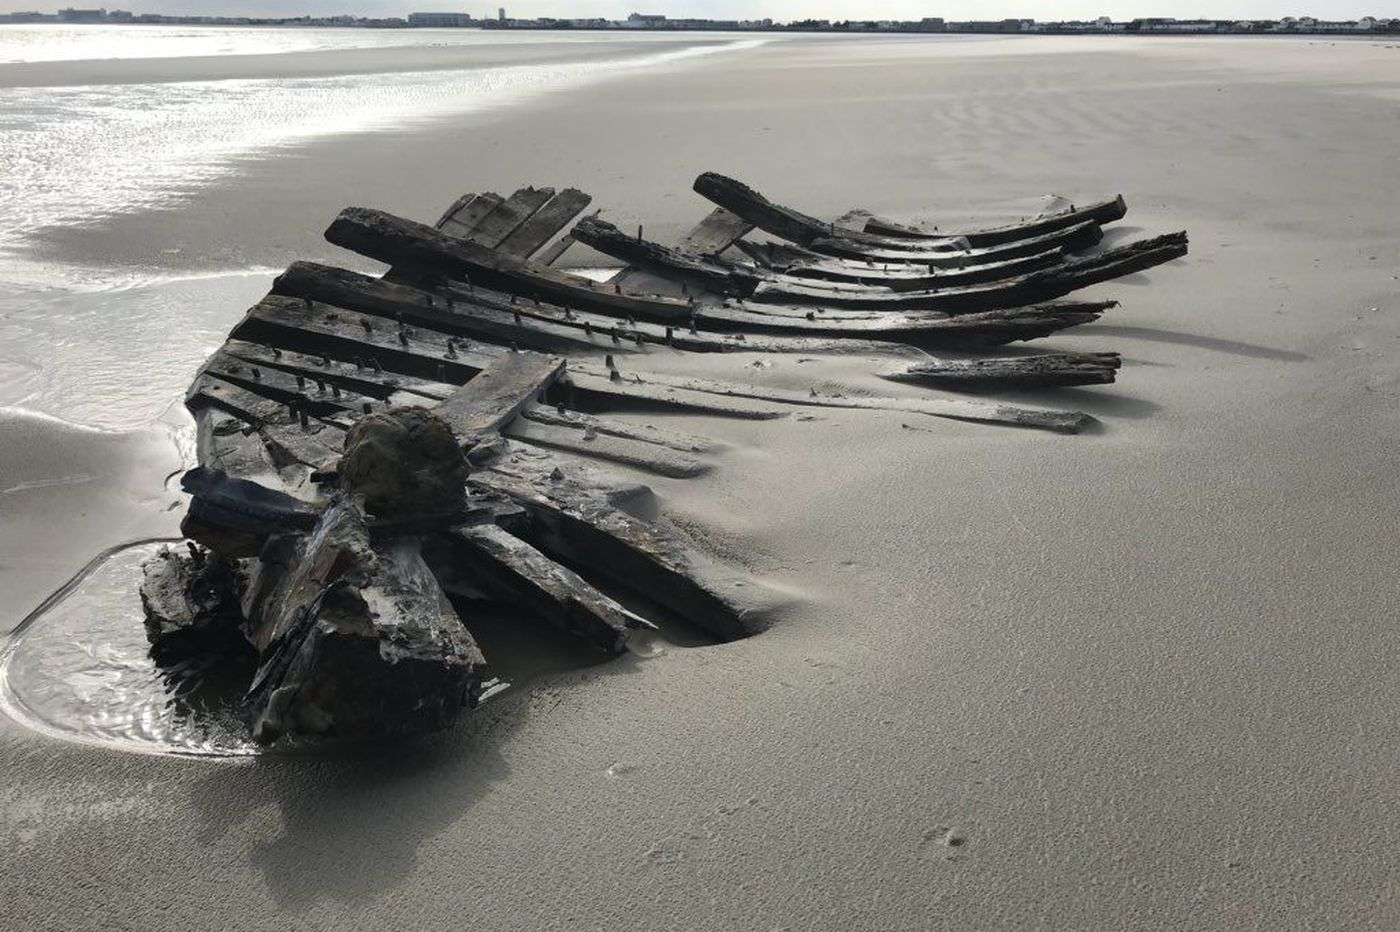 Discovery of shipwreck at the Jersey Shore fuels debate: Which boat is it?